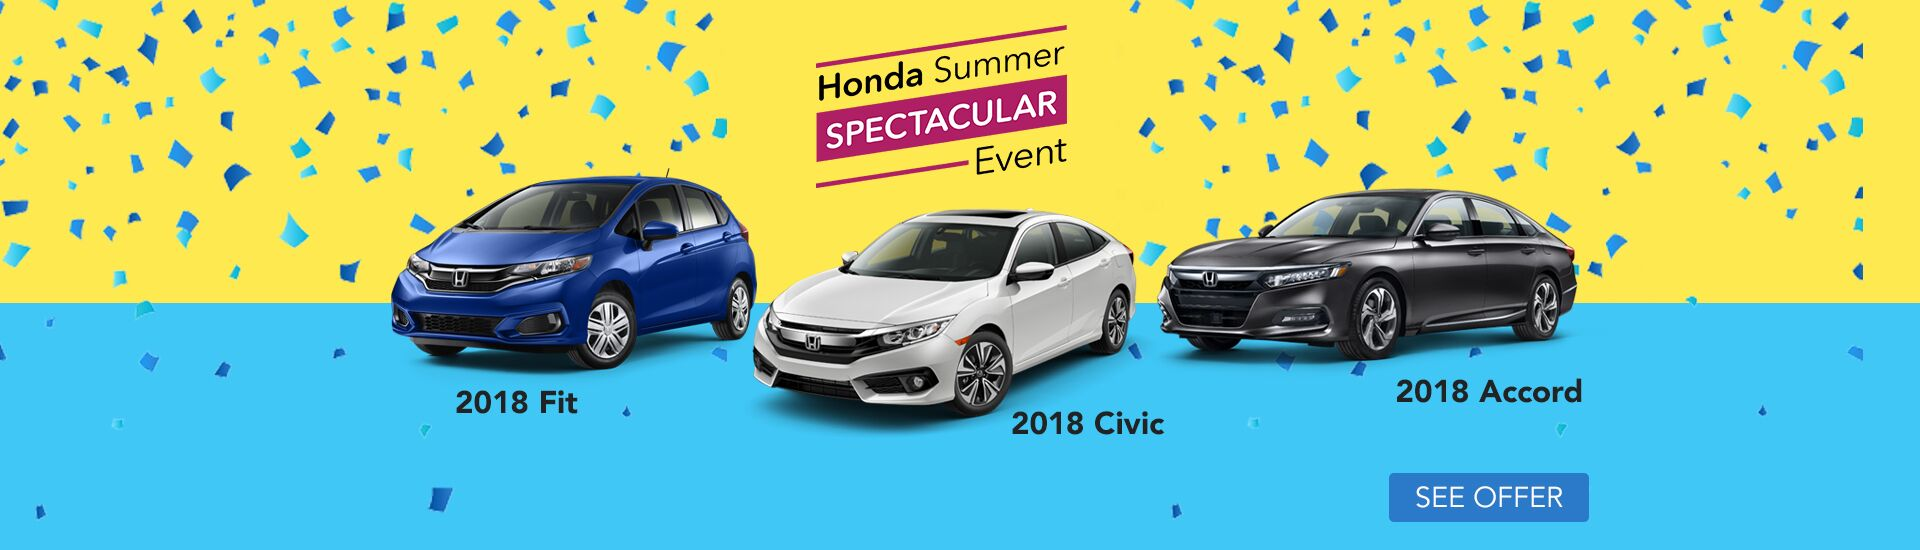 Honda Summer Spectacular Event